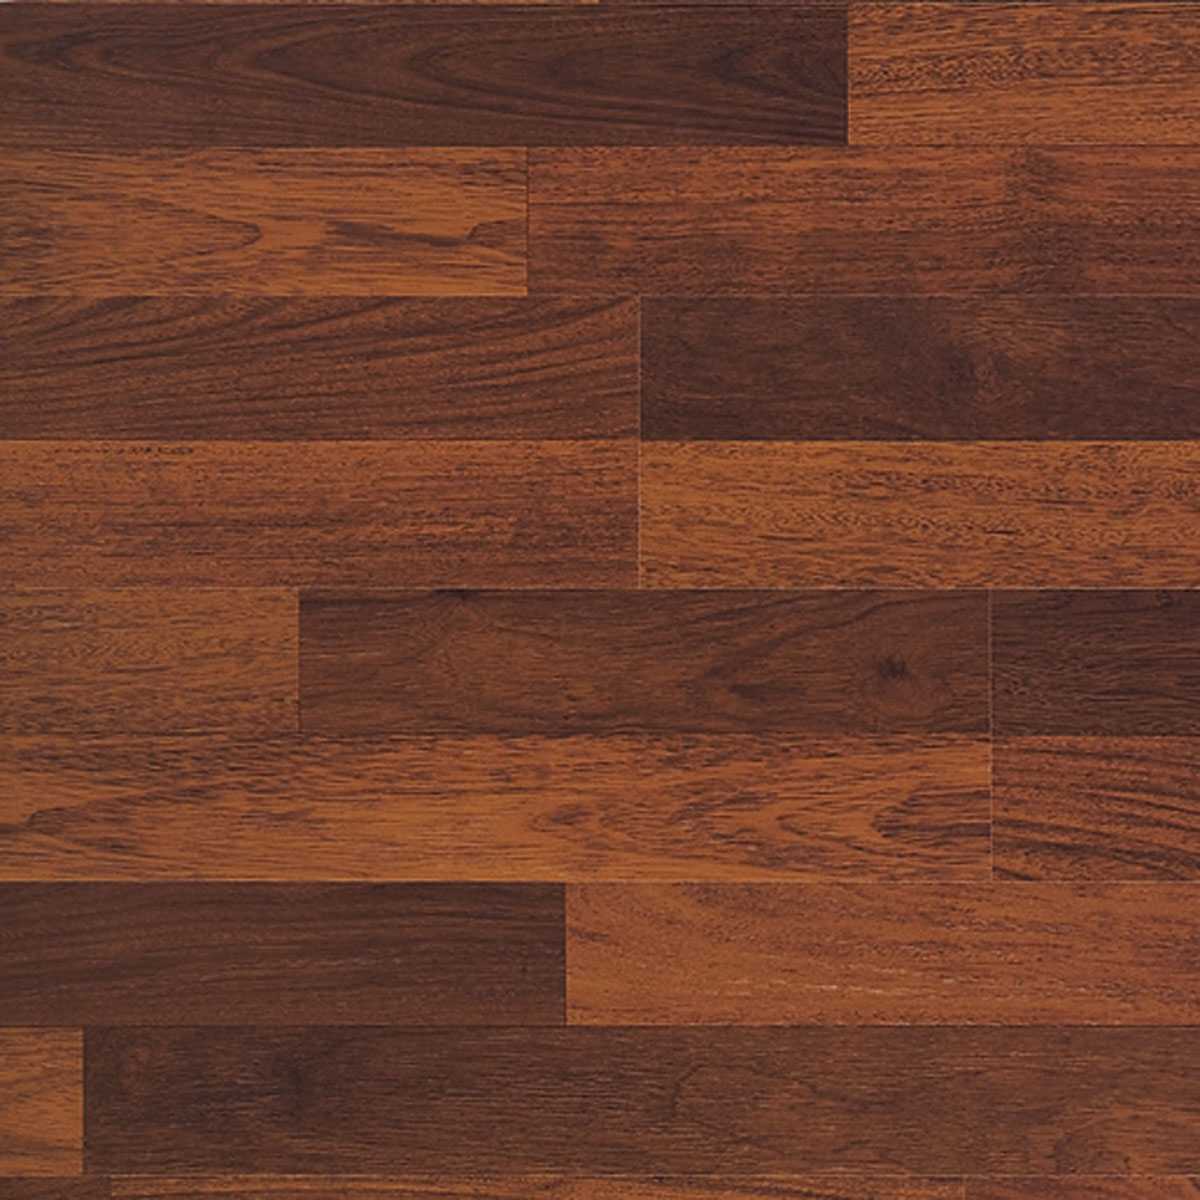 Brazilian cherry high gloss brazilian cherry laminate for Hard laminate flooring